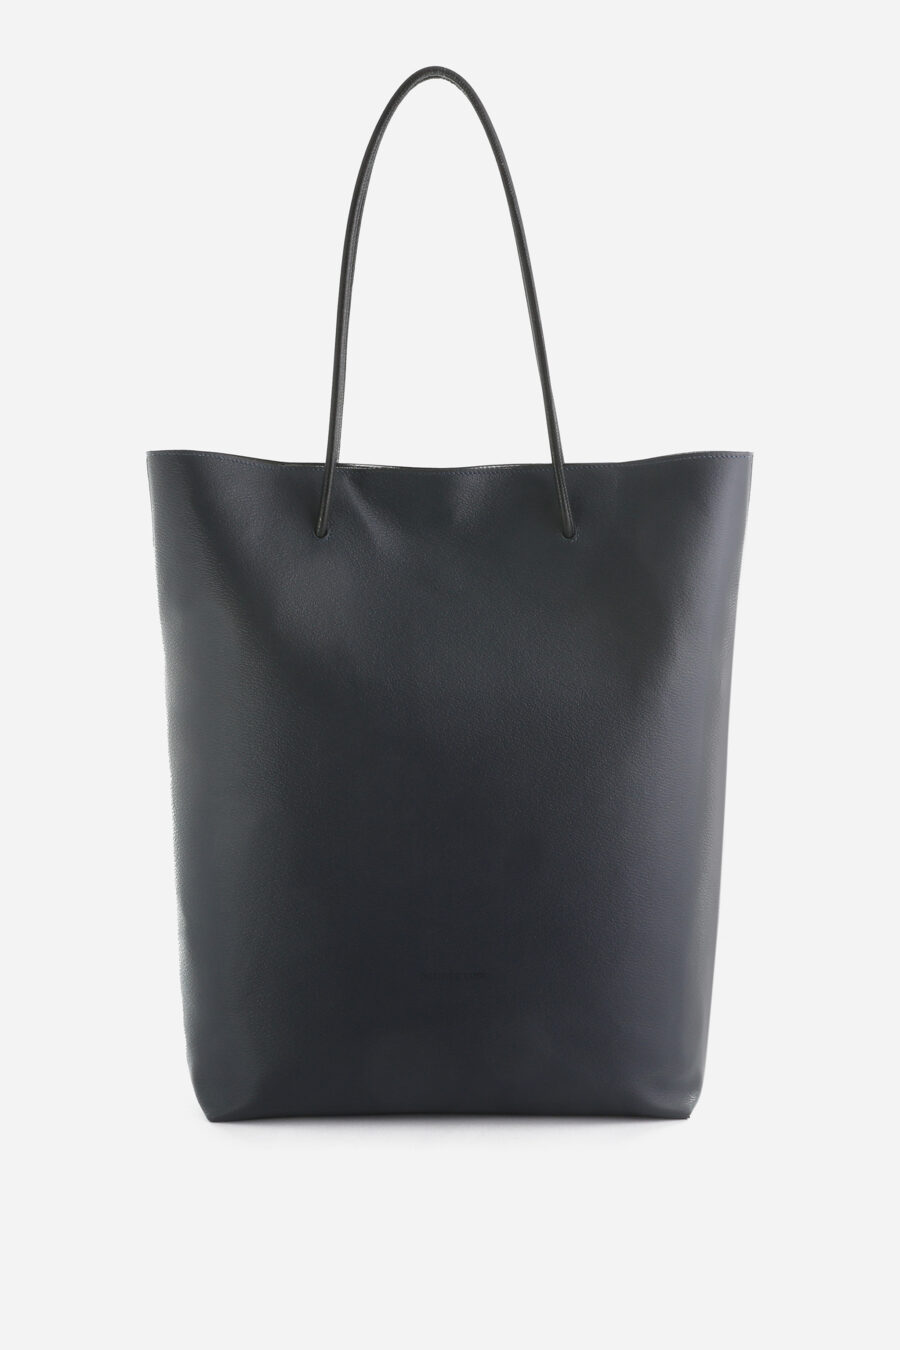 SHOPPING-BAG-KELLY-PELLE-MARTELLATA-BLU_1